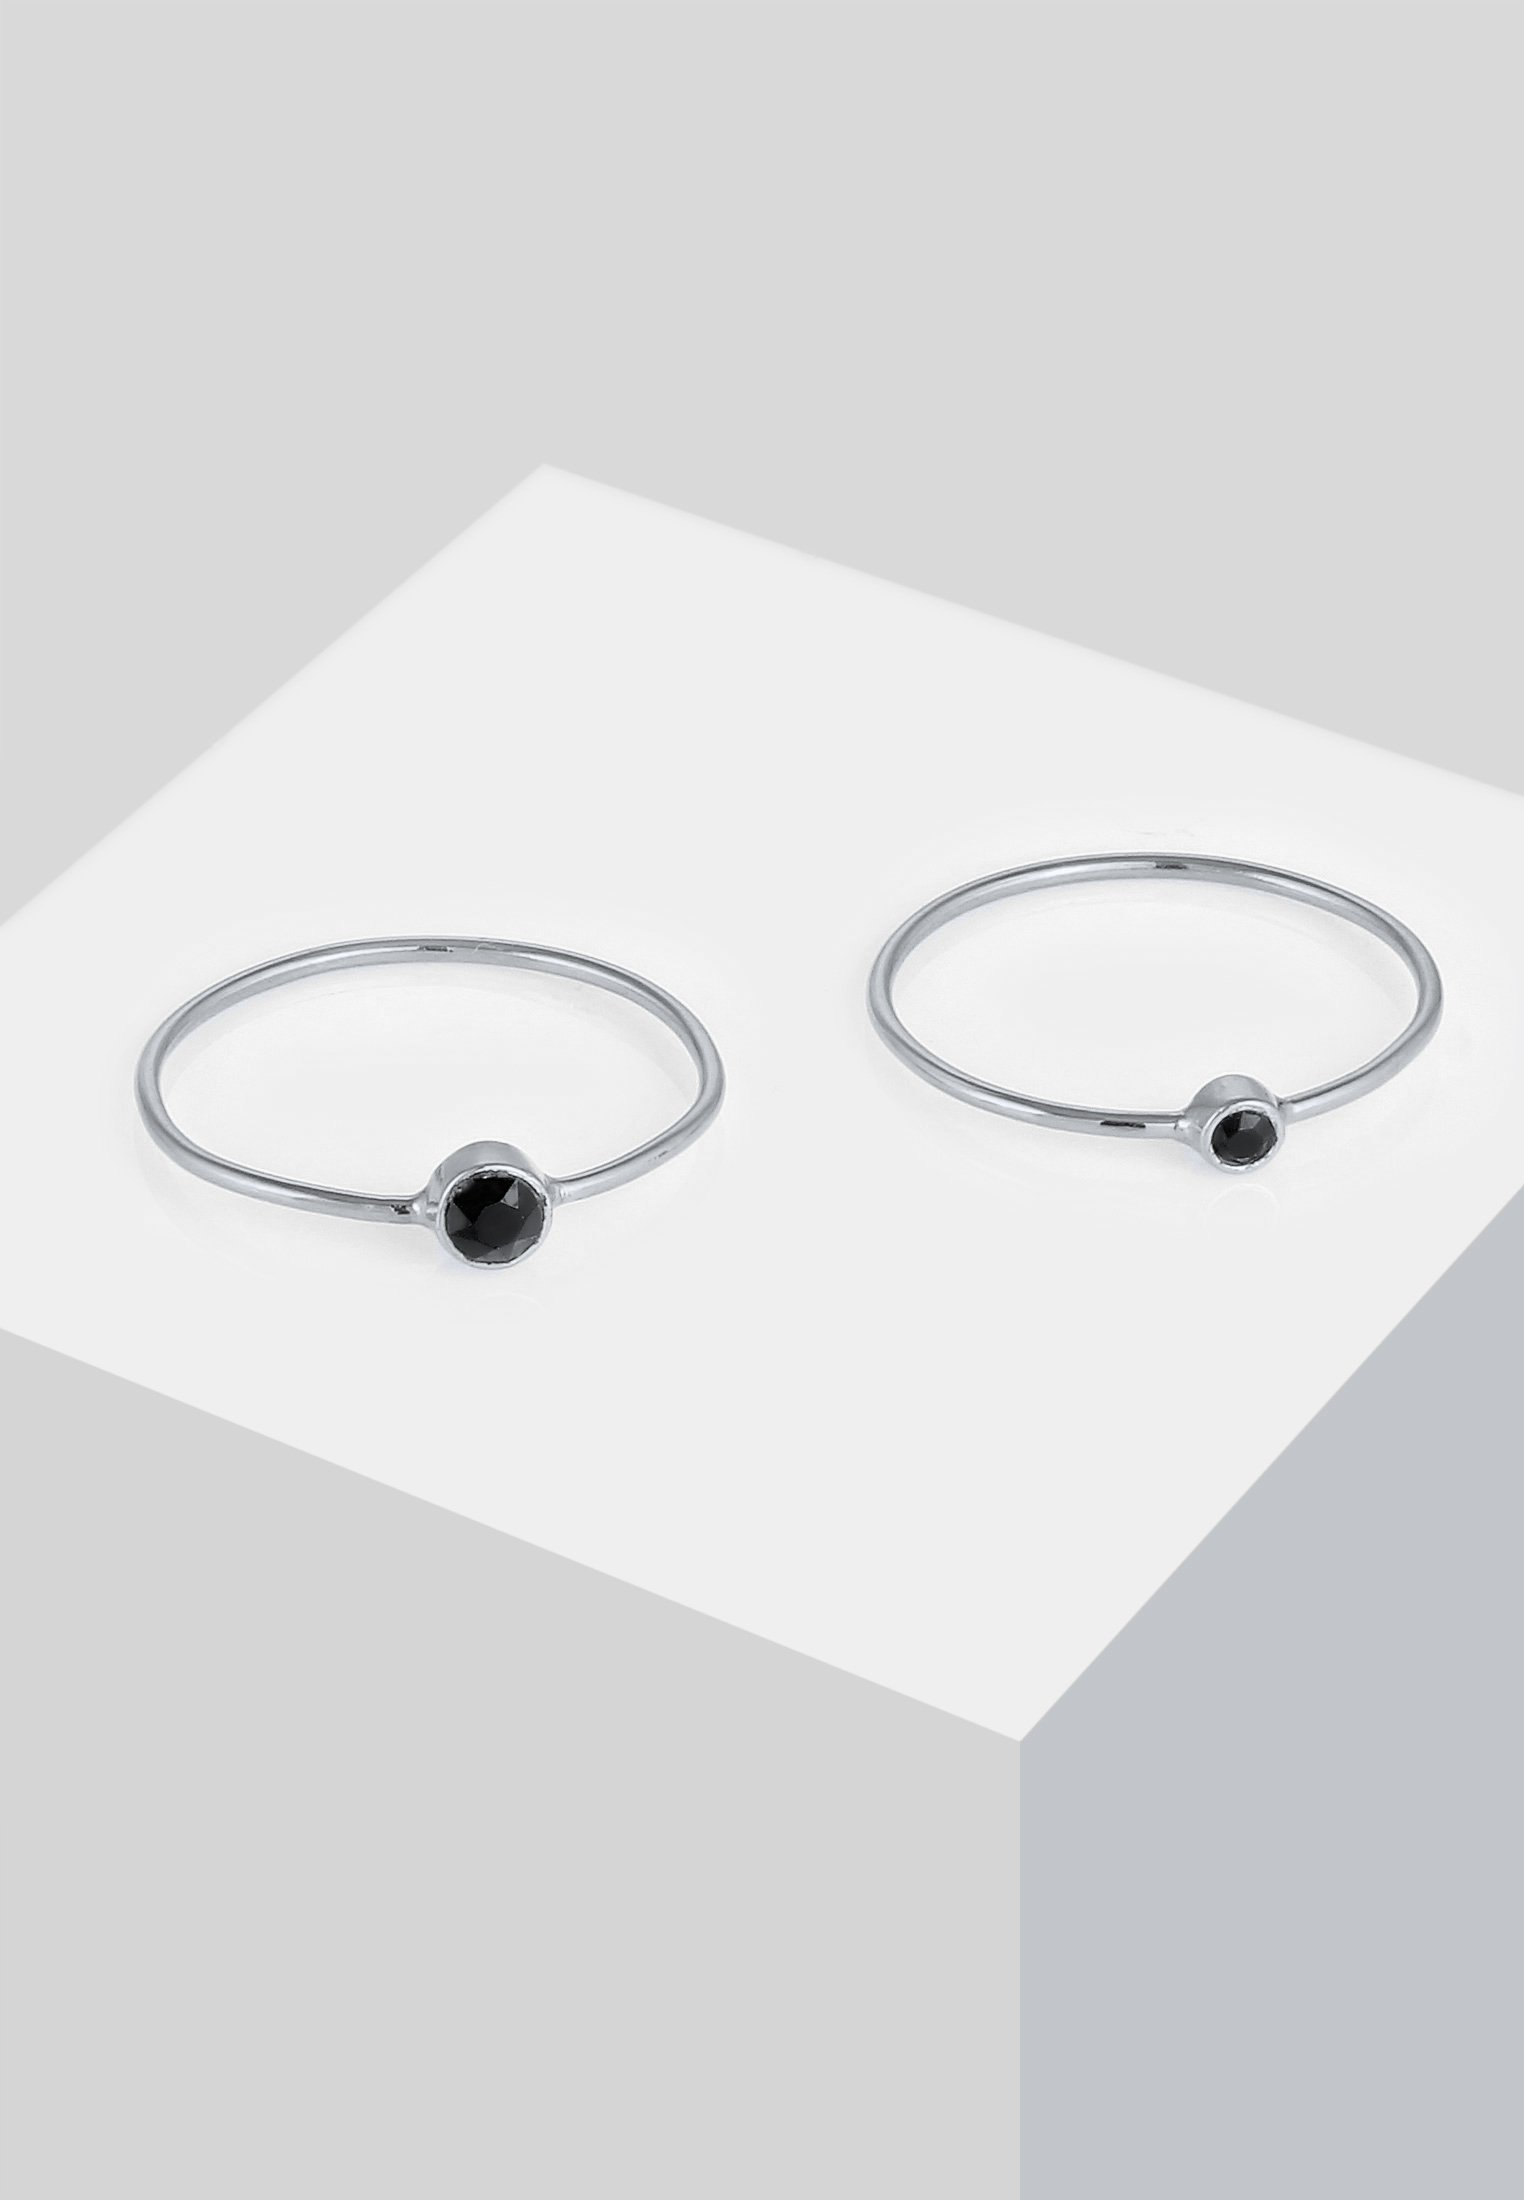 Very Cheap Popular And Cheap Accessories Elli SET Ring silber ktopkYCSZ gBLBD9ZEO